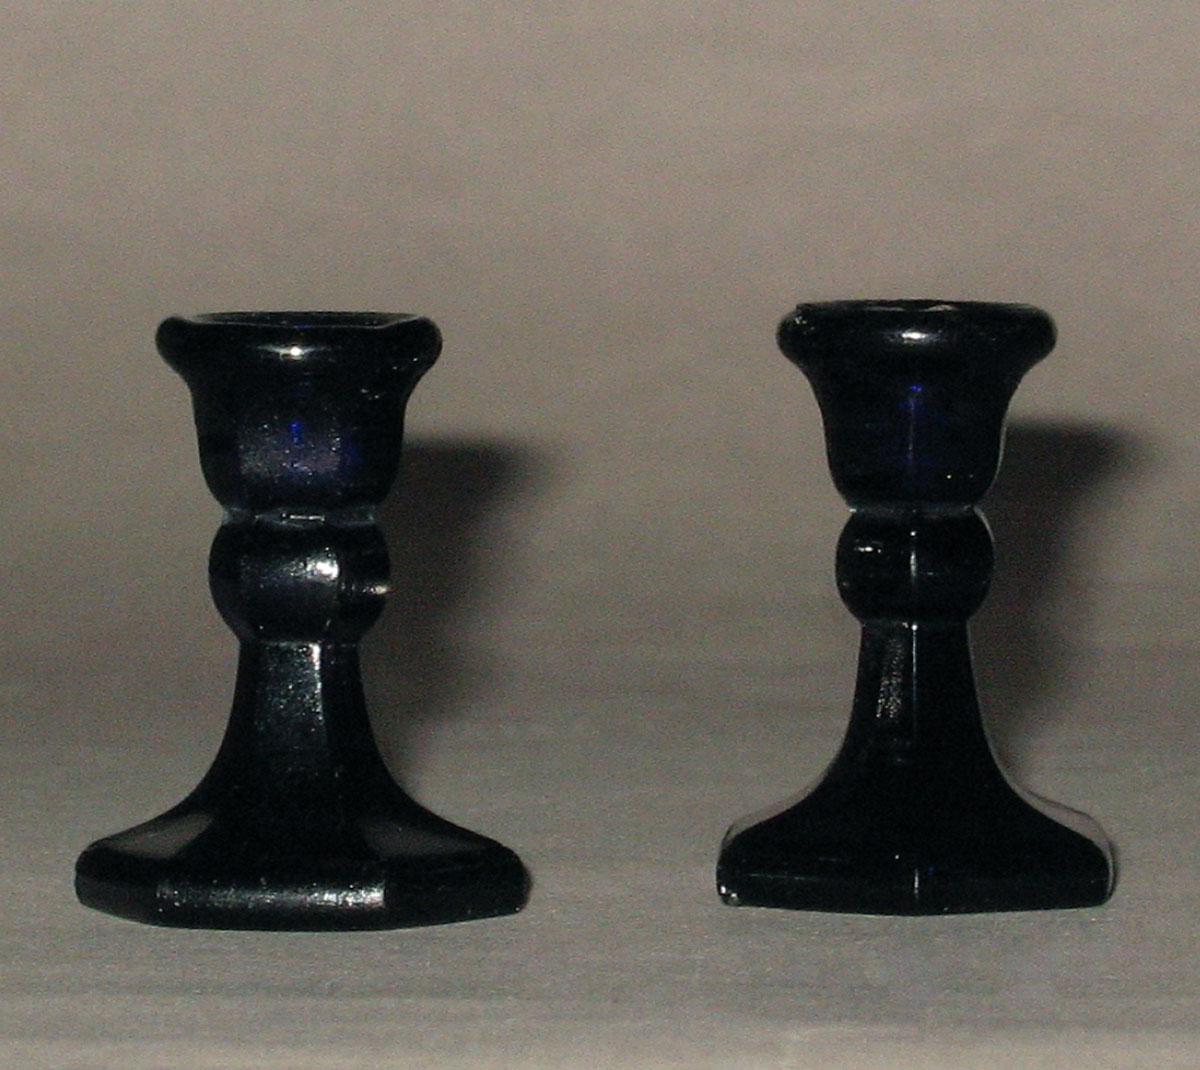 1964.1468.001, .002 Miniature glass candlesticks